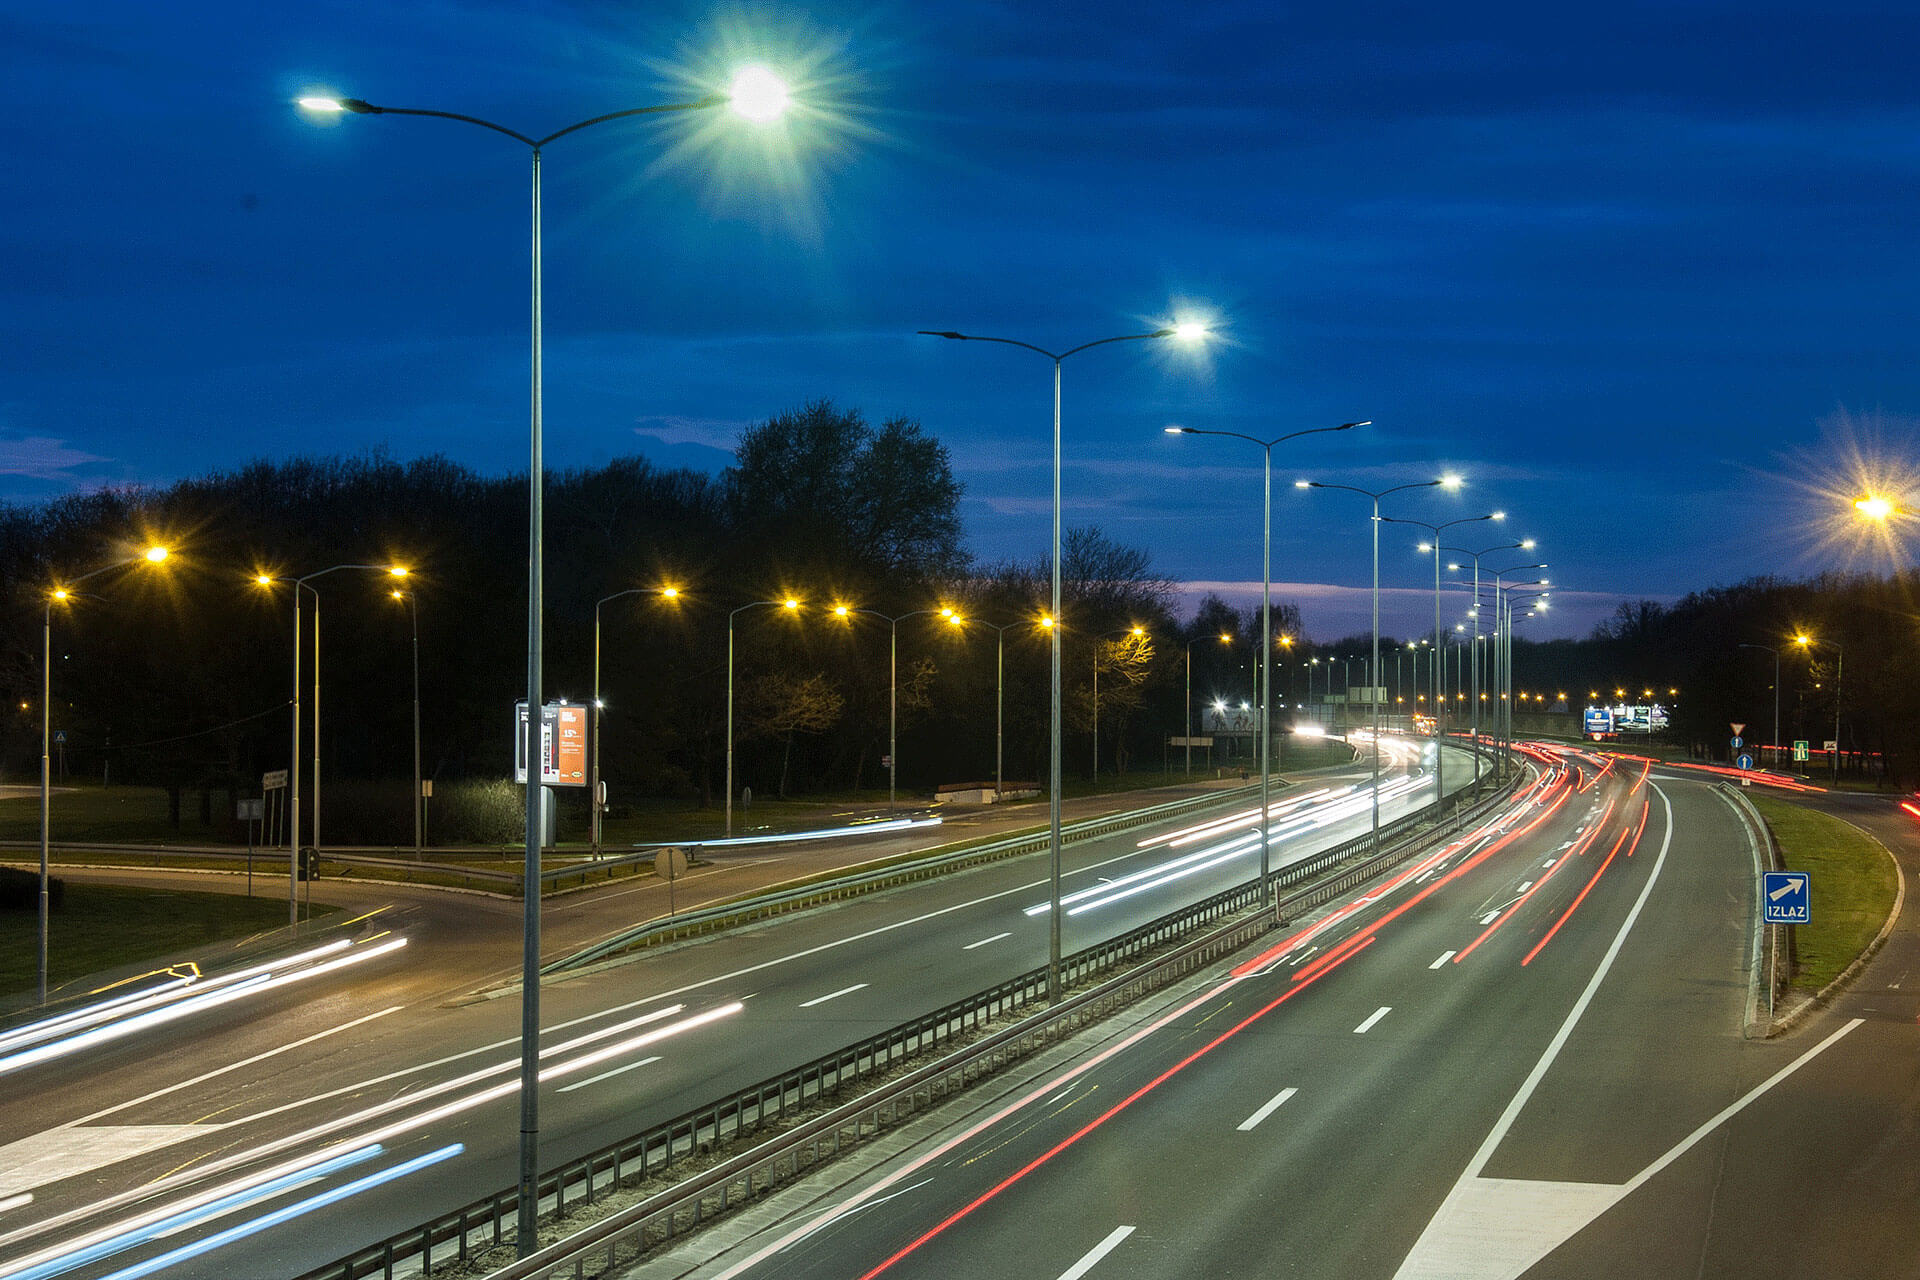 Ampera luminaires emit crisp white light ensuring excellent visibility and high visual comfort on E75